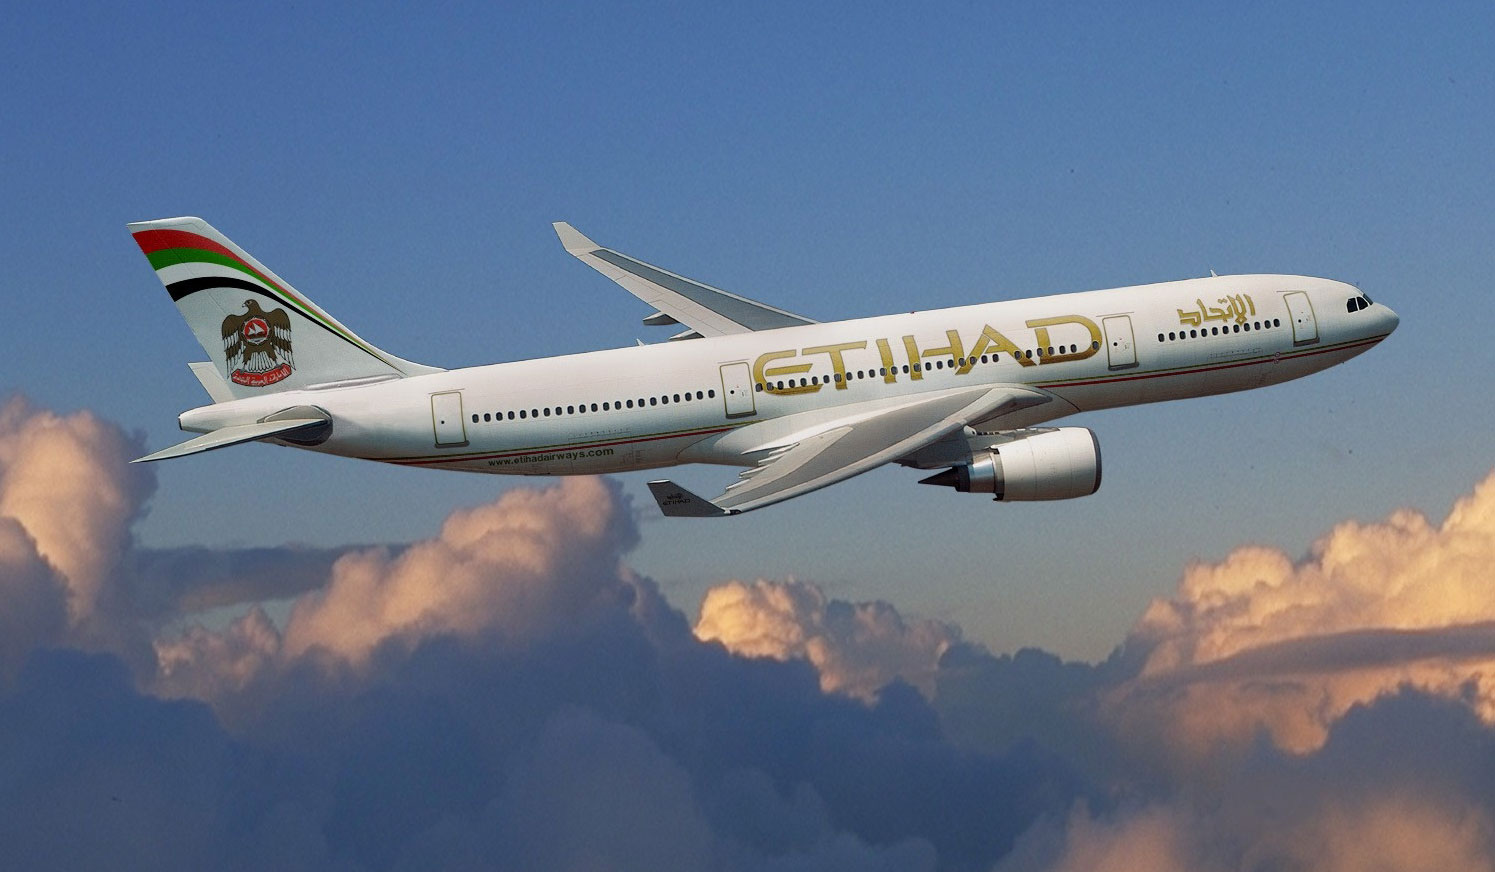 Indonesian woman delivers baby on board Etihad Airways flight